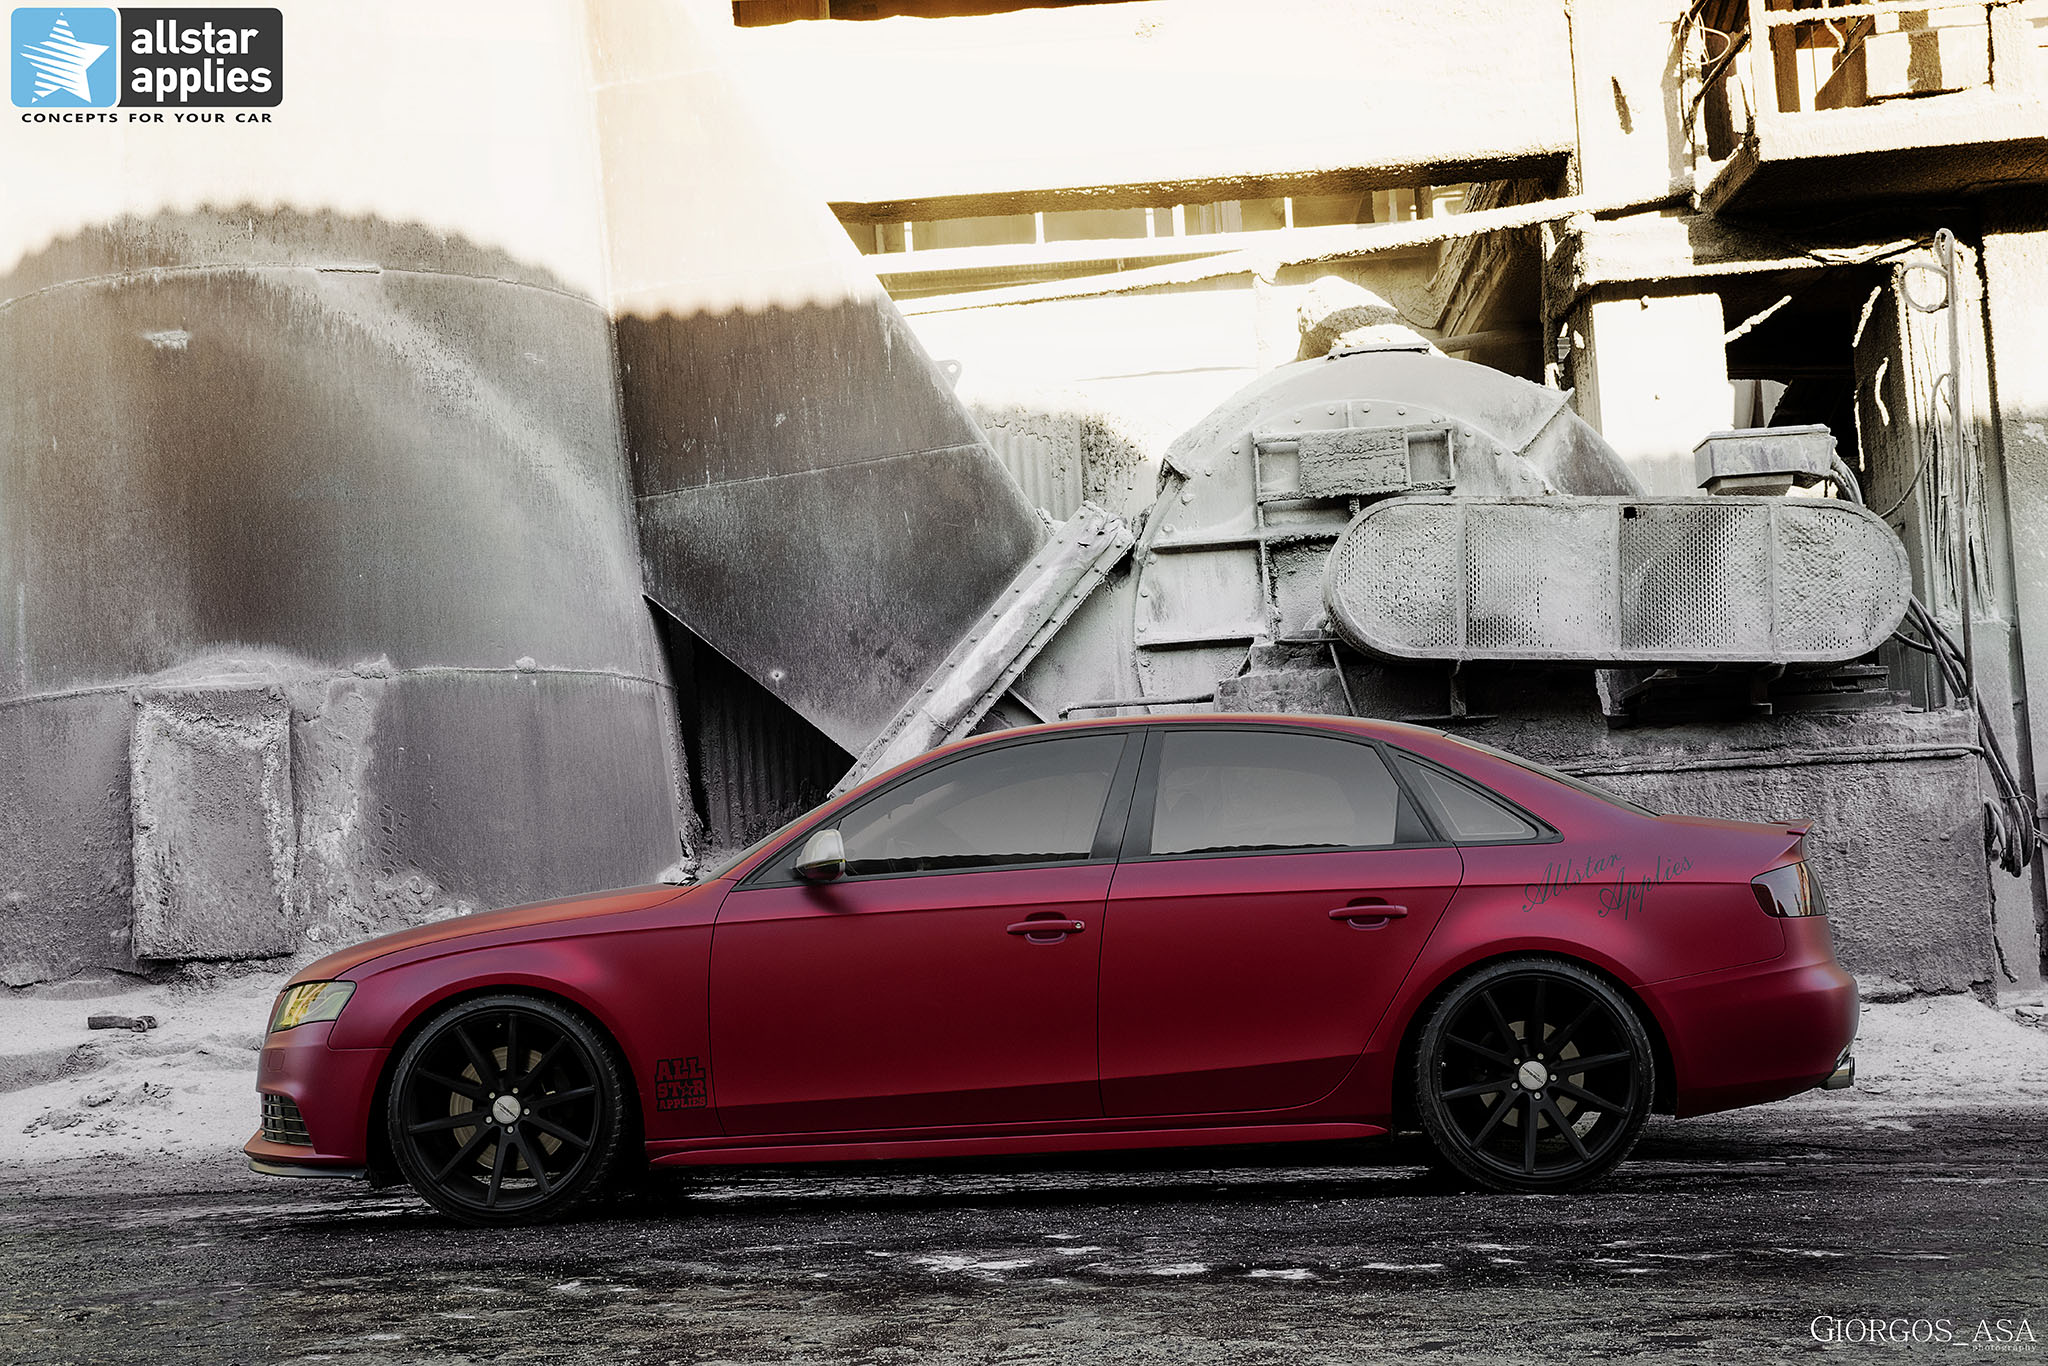 Audi A4 - Cherry Red Chrome (10)